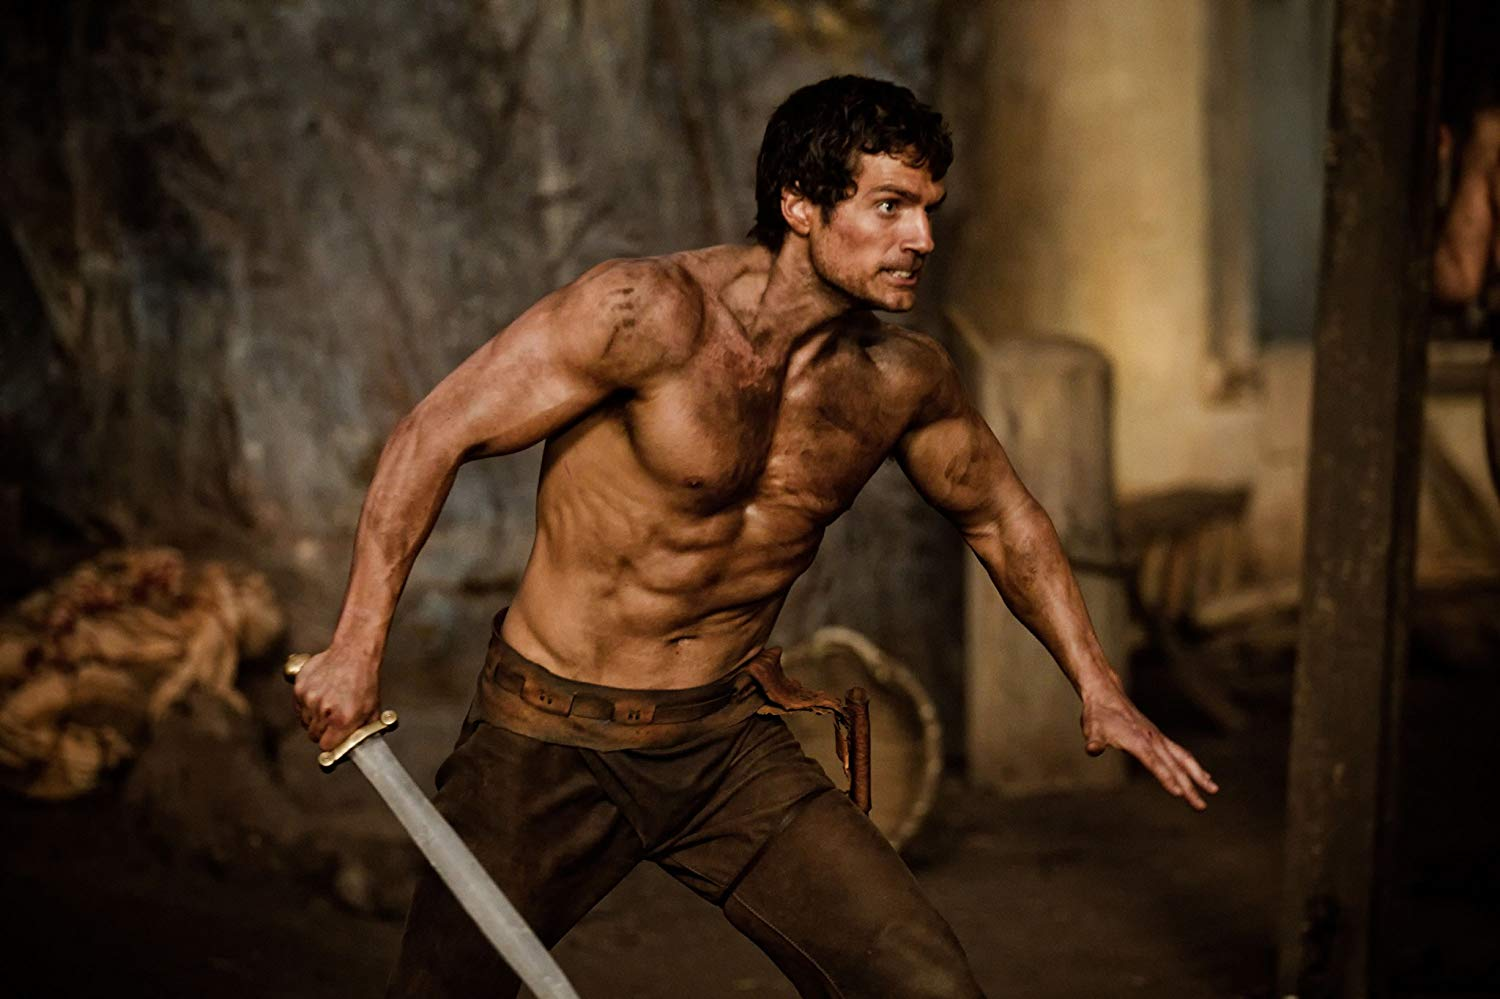 Henry Cavill as Theseus in Immortals (2011)